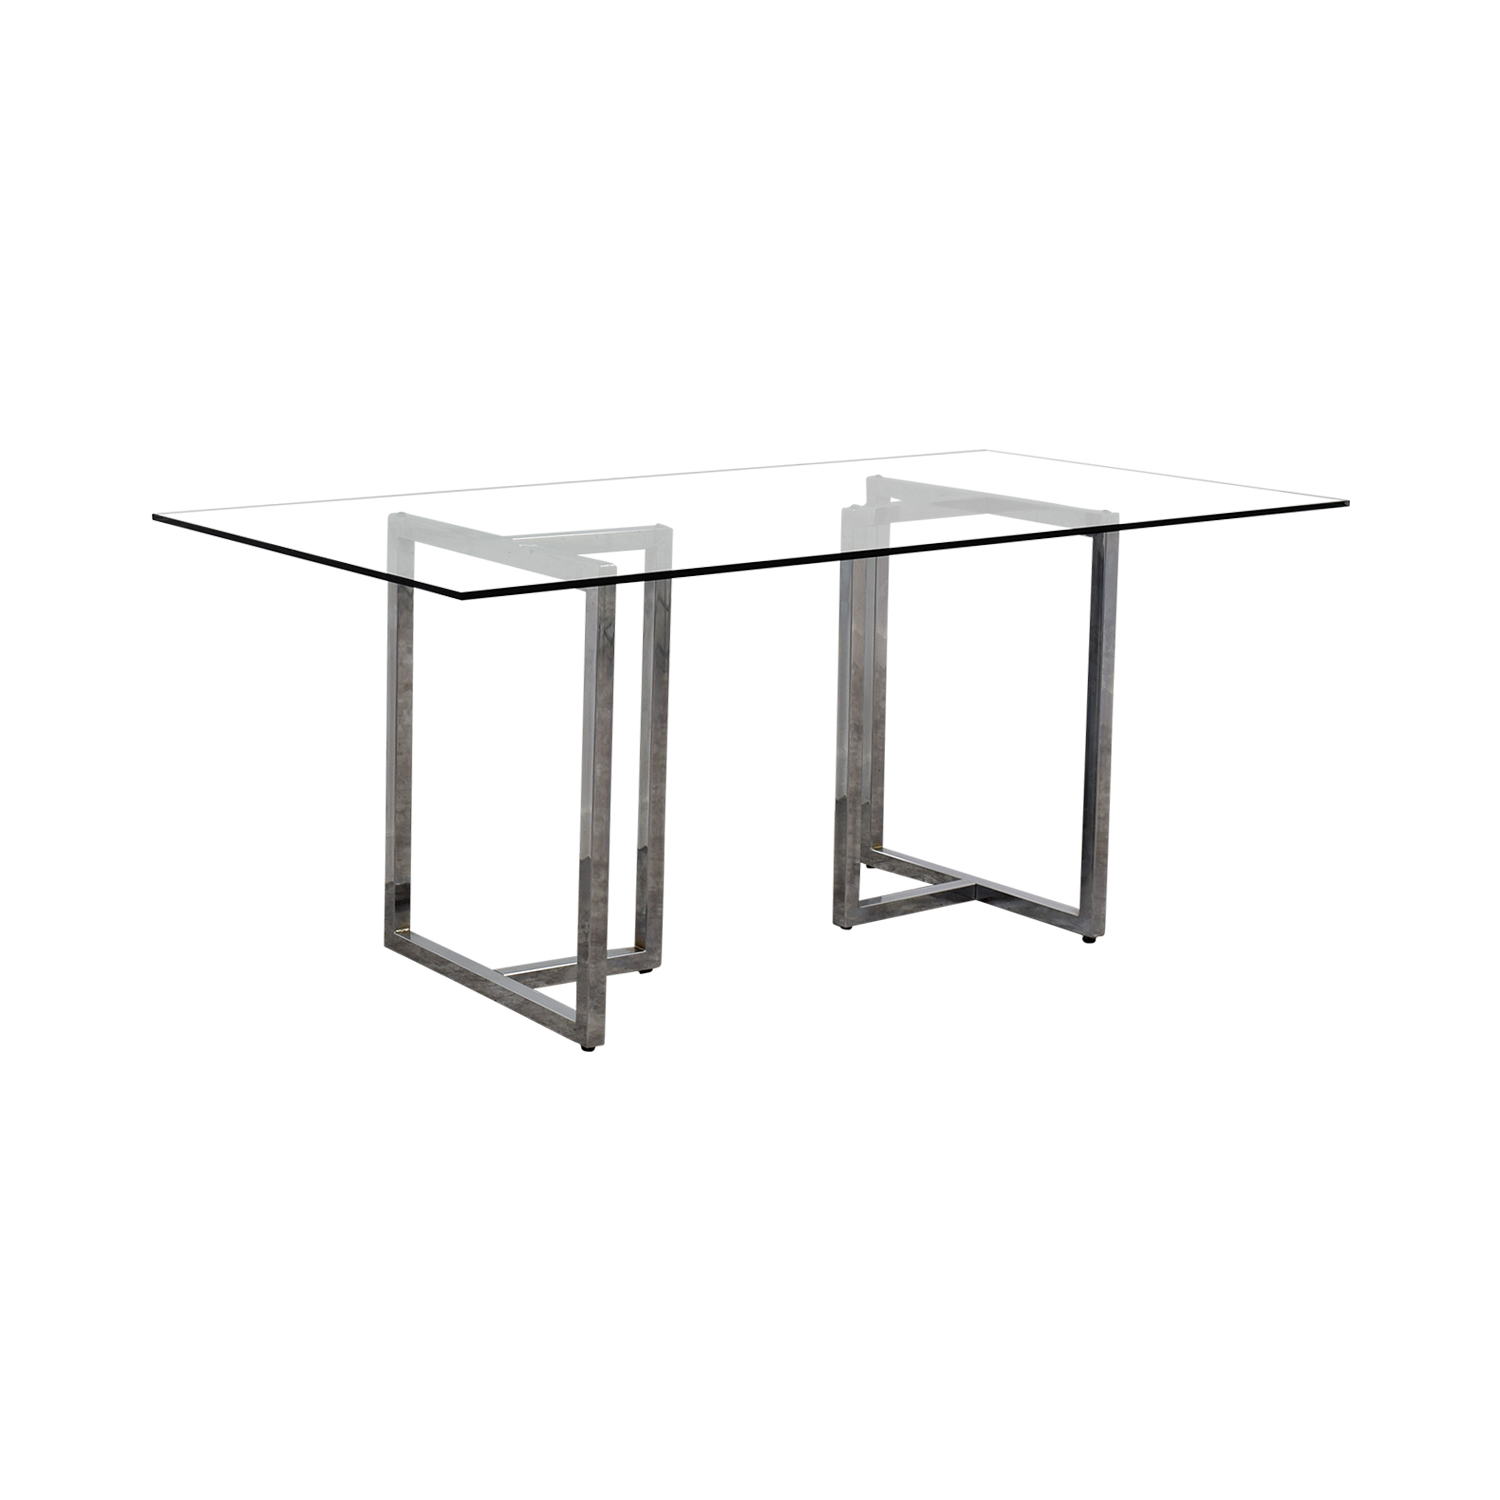 cb2 pocket dining table Brokeasshomecom : cb2 silverado rectangular glass and chrome dining table second hand from brokeasshome.com size 1500 x 1500 jpeg 254kB